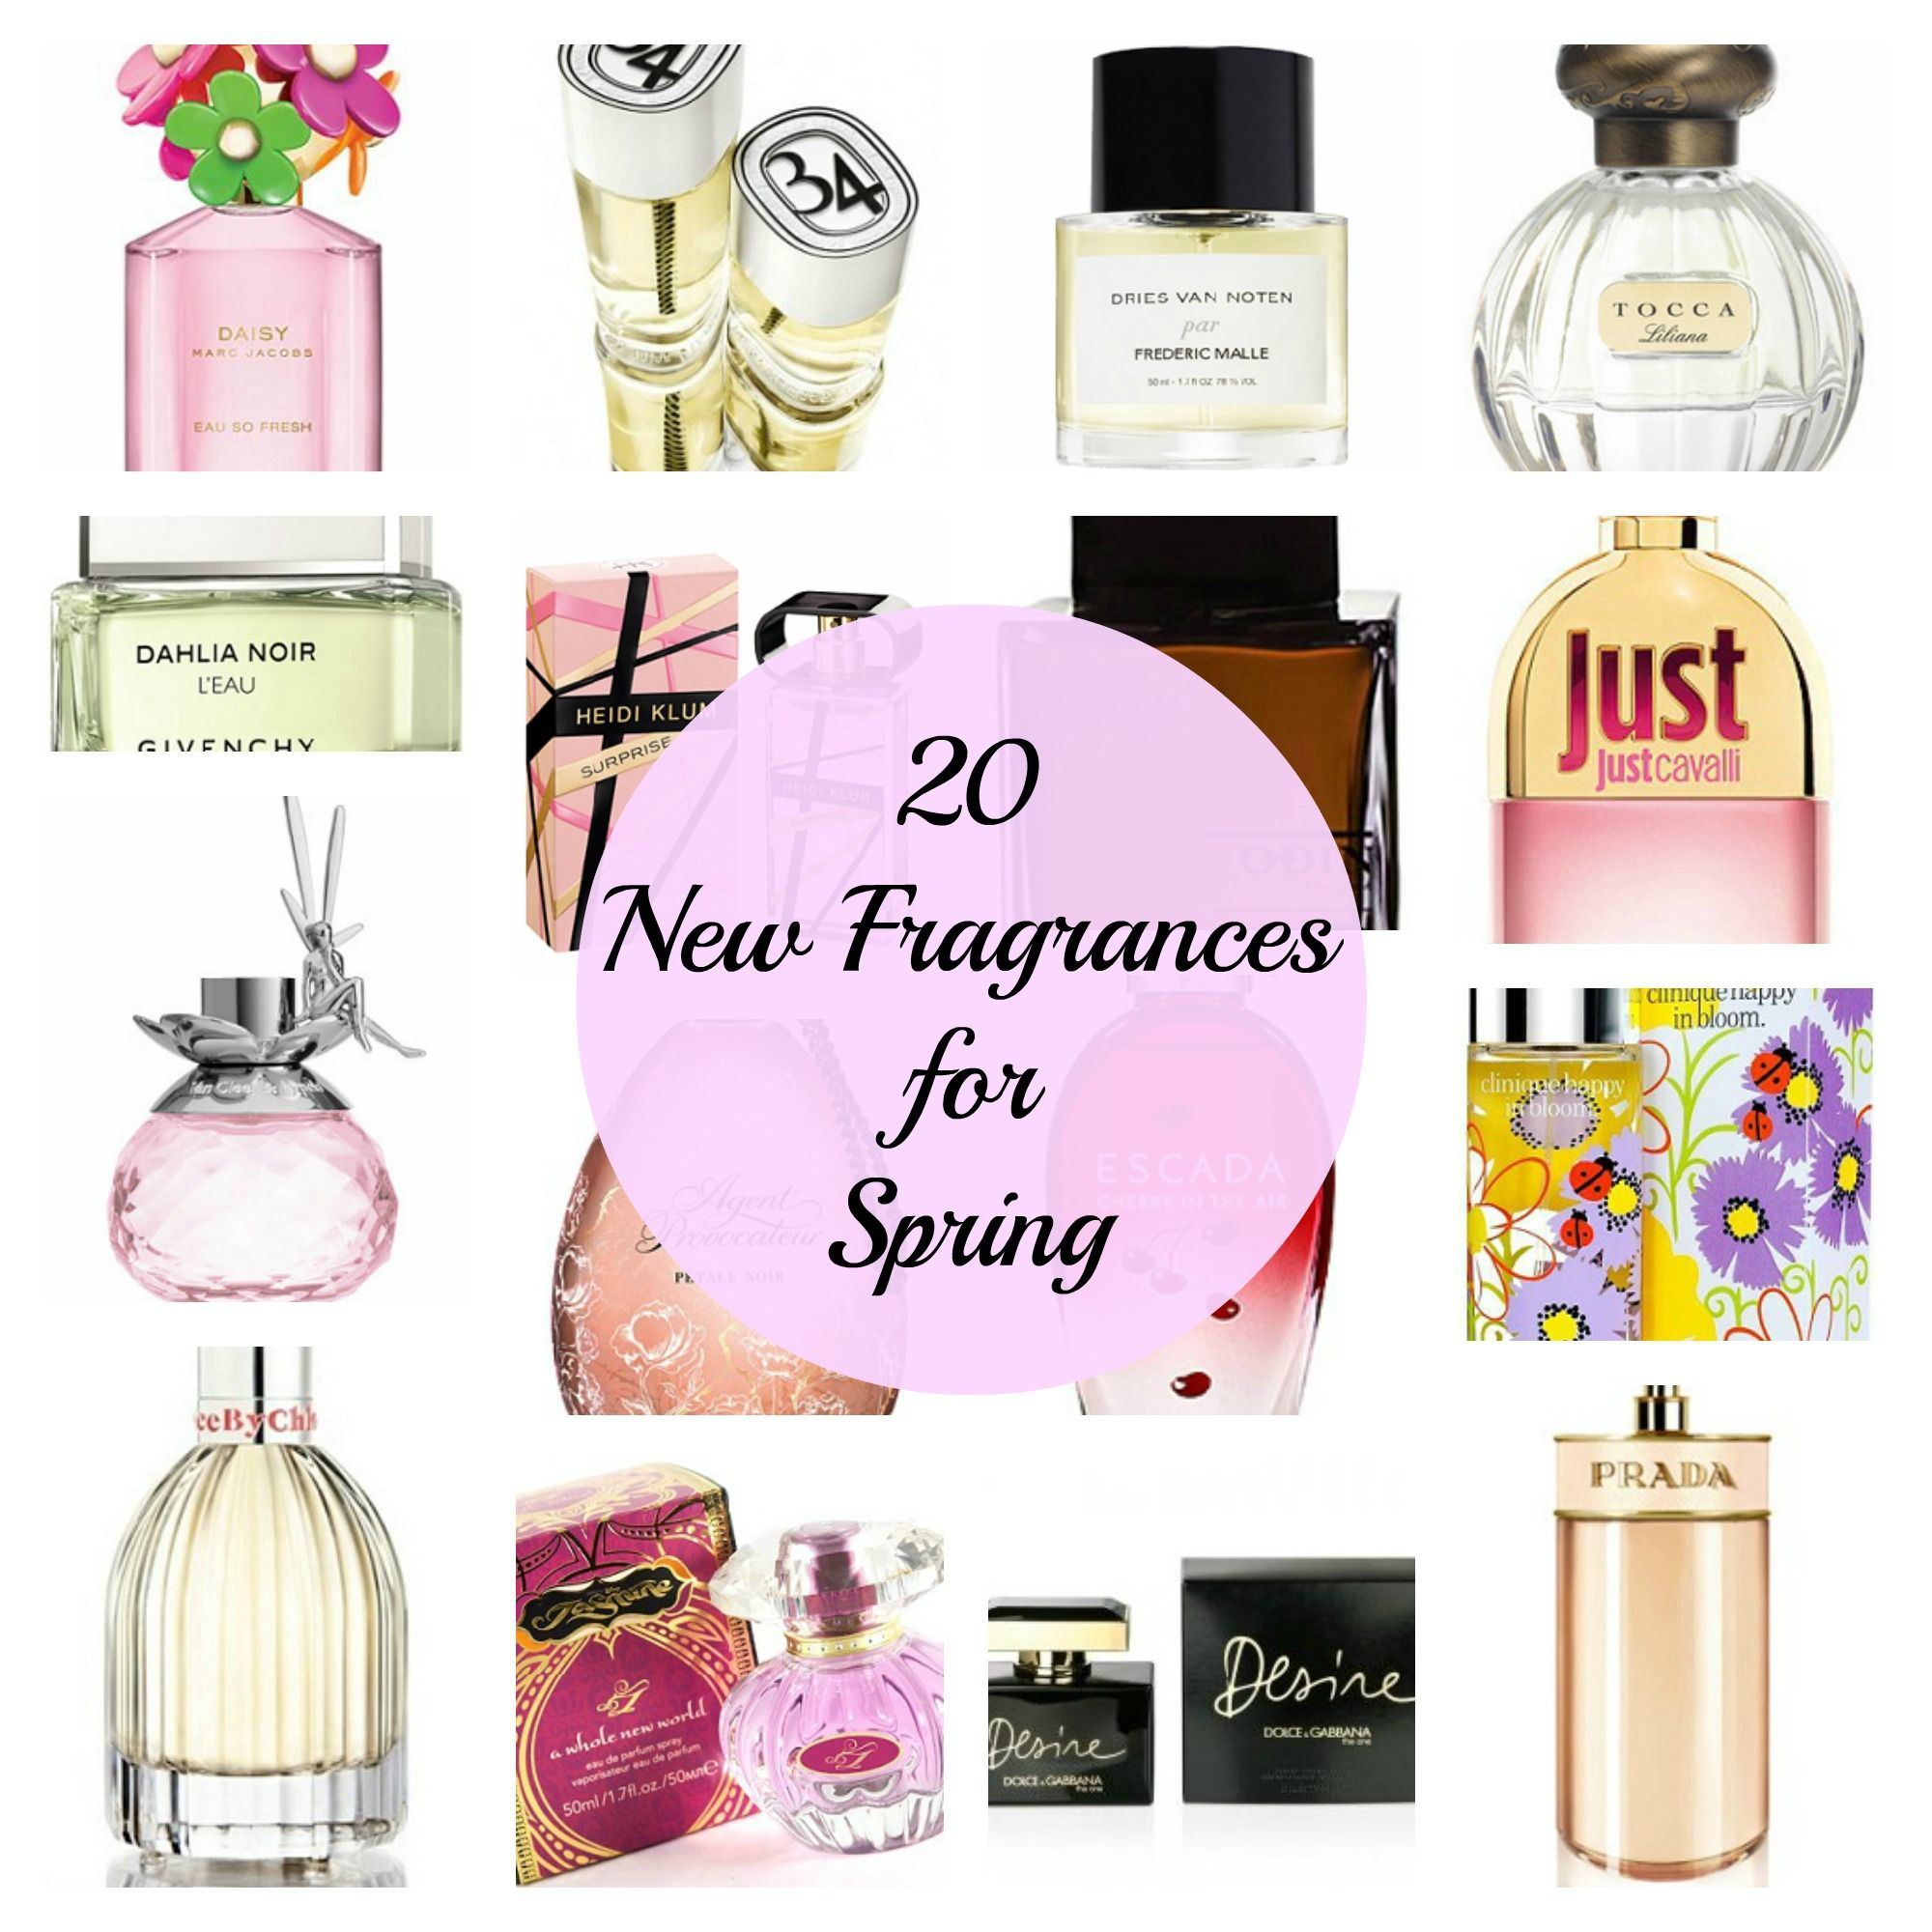 20 Best New Perfumes For Spring 2013 Glam Beauty New Fragrances Fragrance Spring